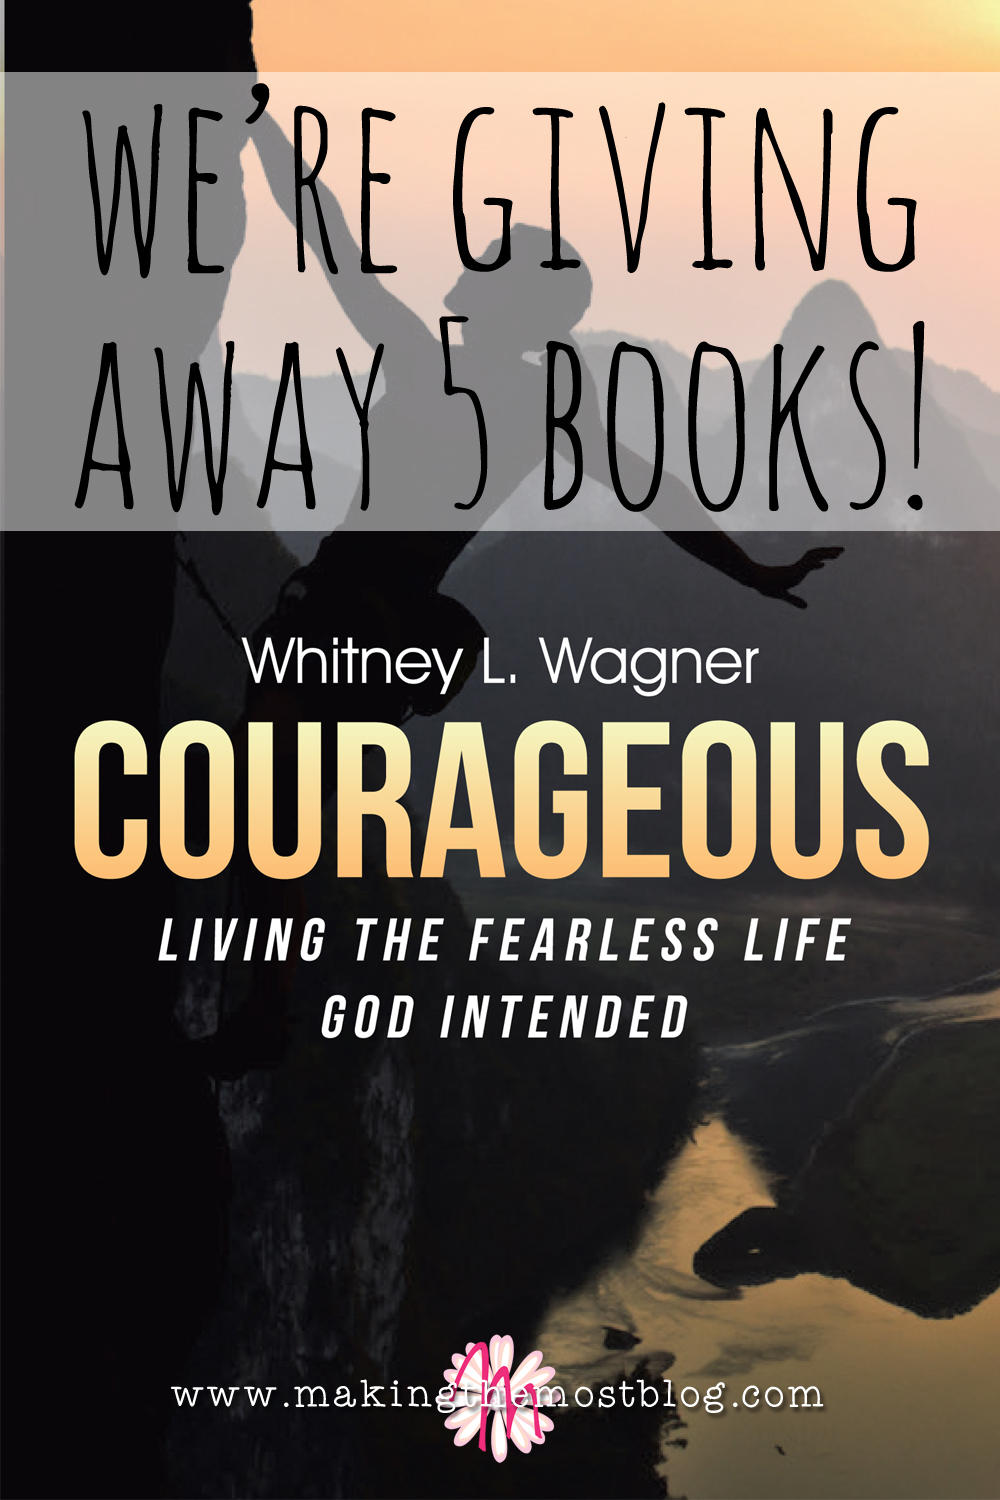 Share the Love {Courageous Giveaway!} | Making the Most Blog